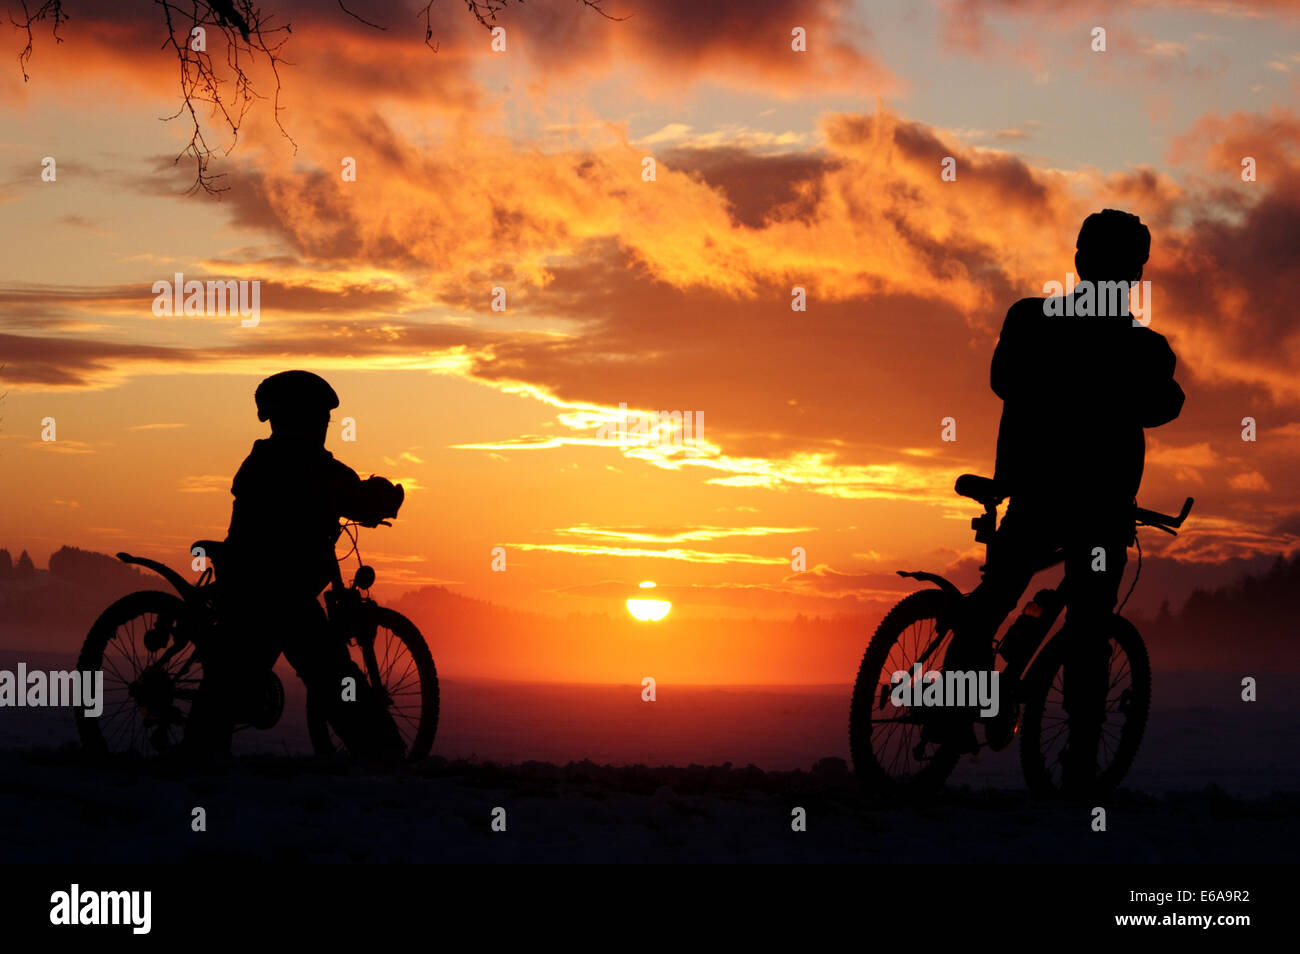 persons,bicycle,silhouette - Stock Image